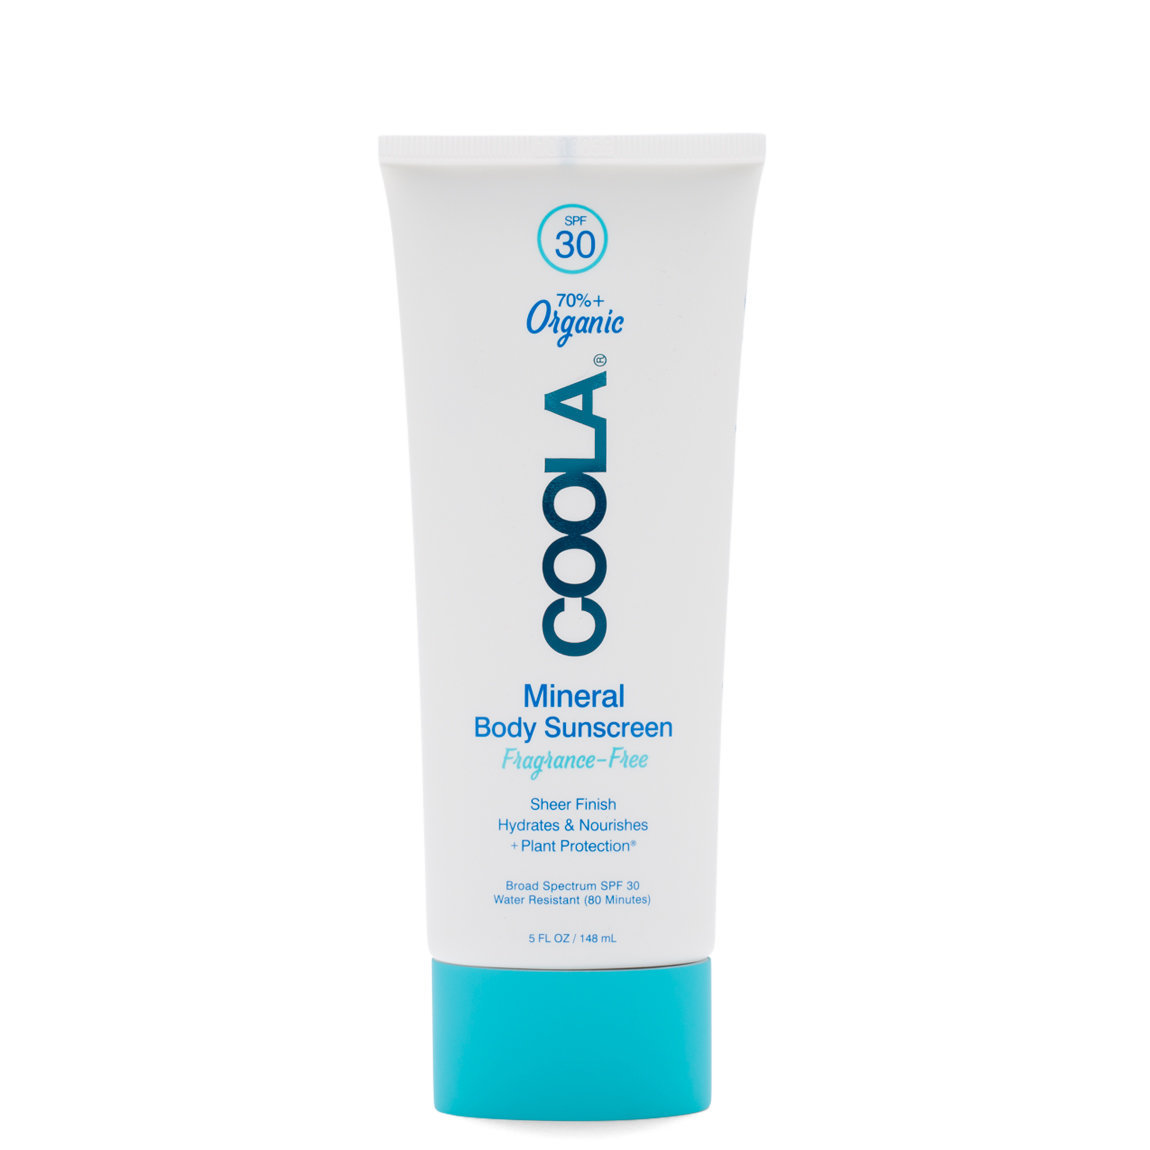 COOLA Mineral Body Sunscreen Lotion SPF 30 product smear.